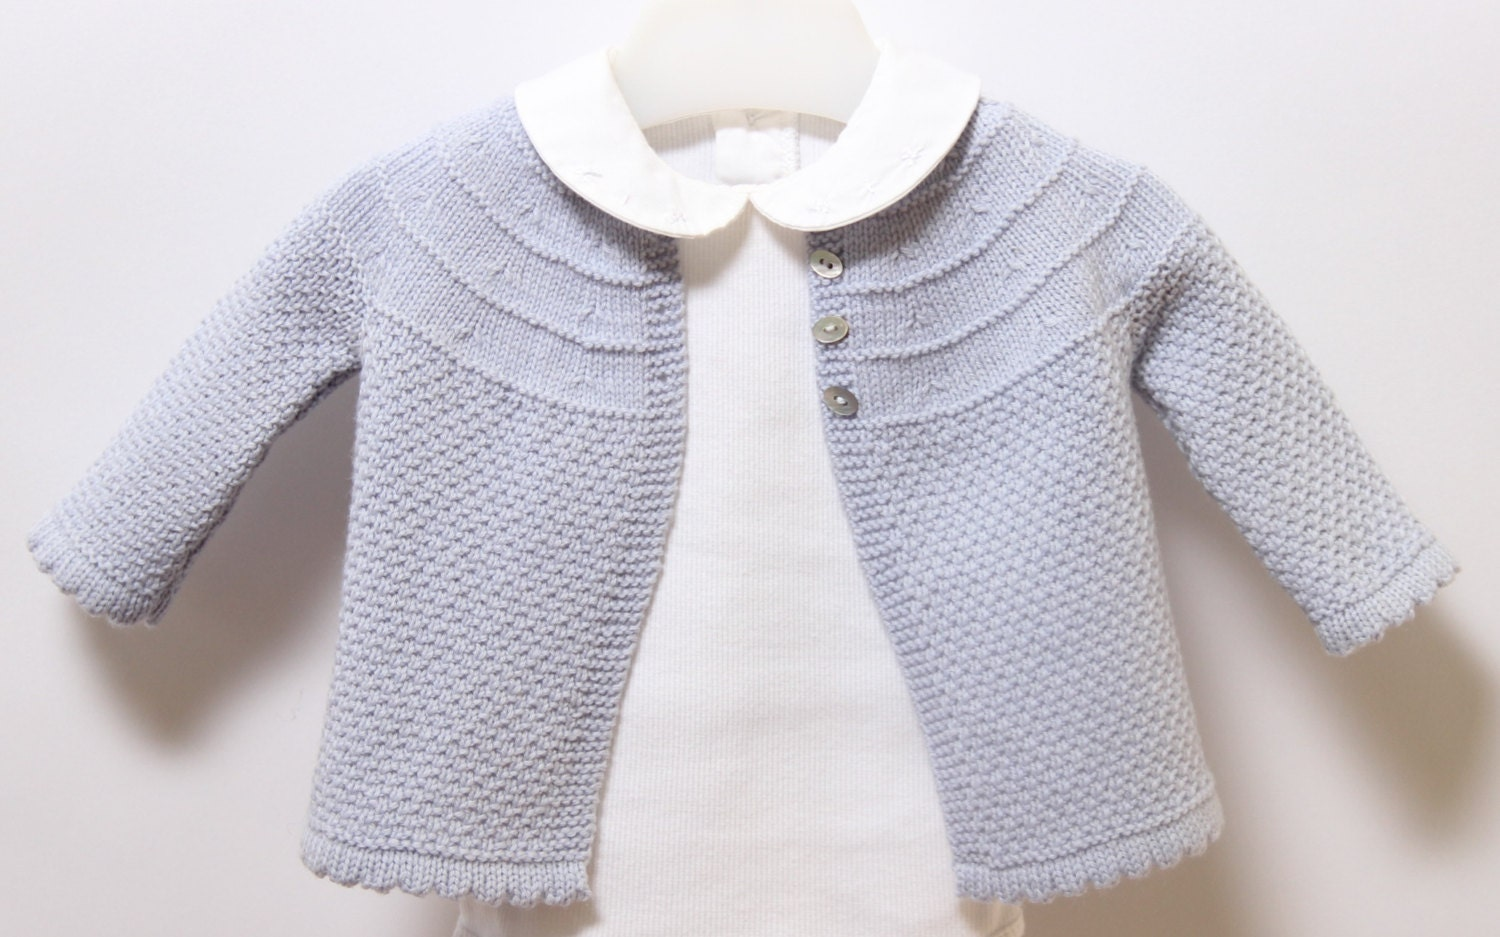 Knitted Jacket Pattern : Baby Jacket / Knitting Pattern Instructions in English / PDF